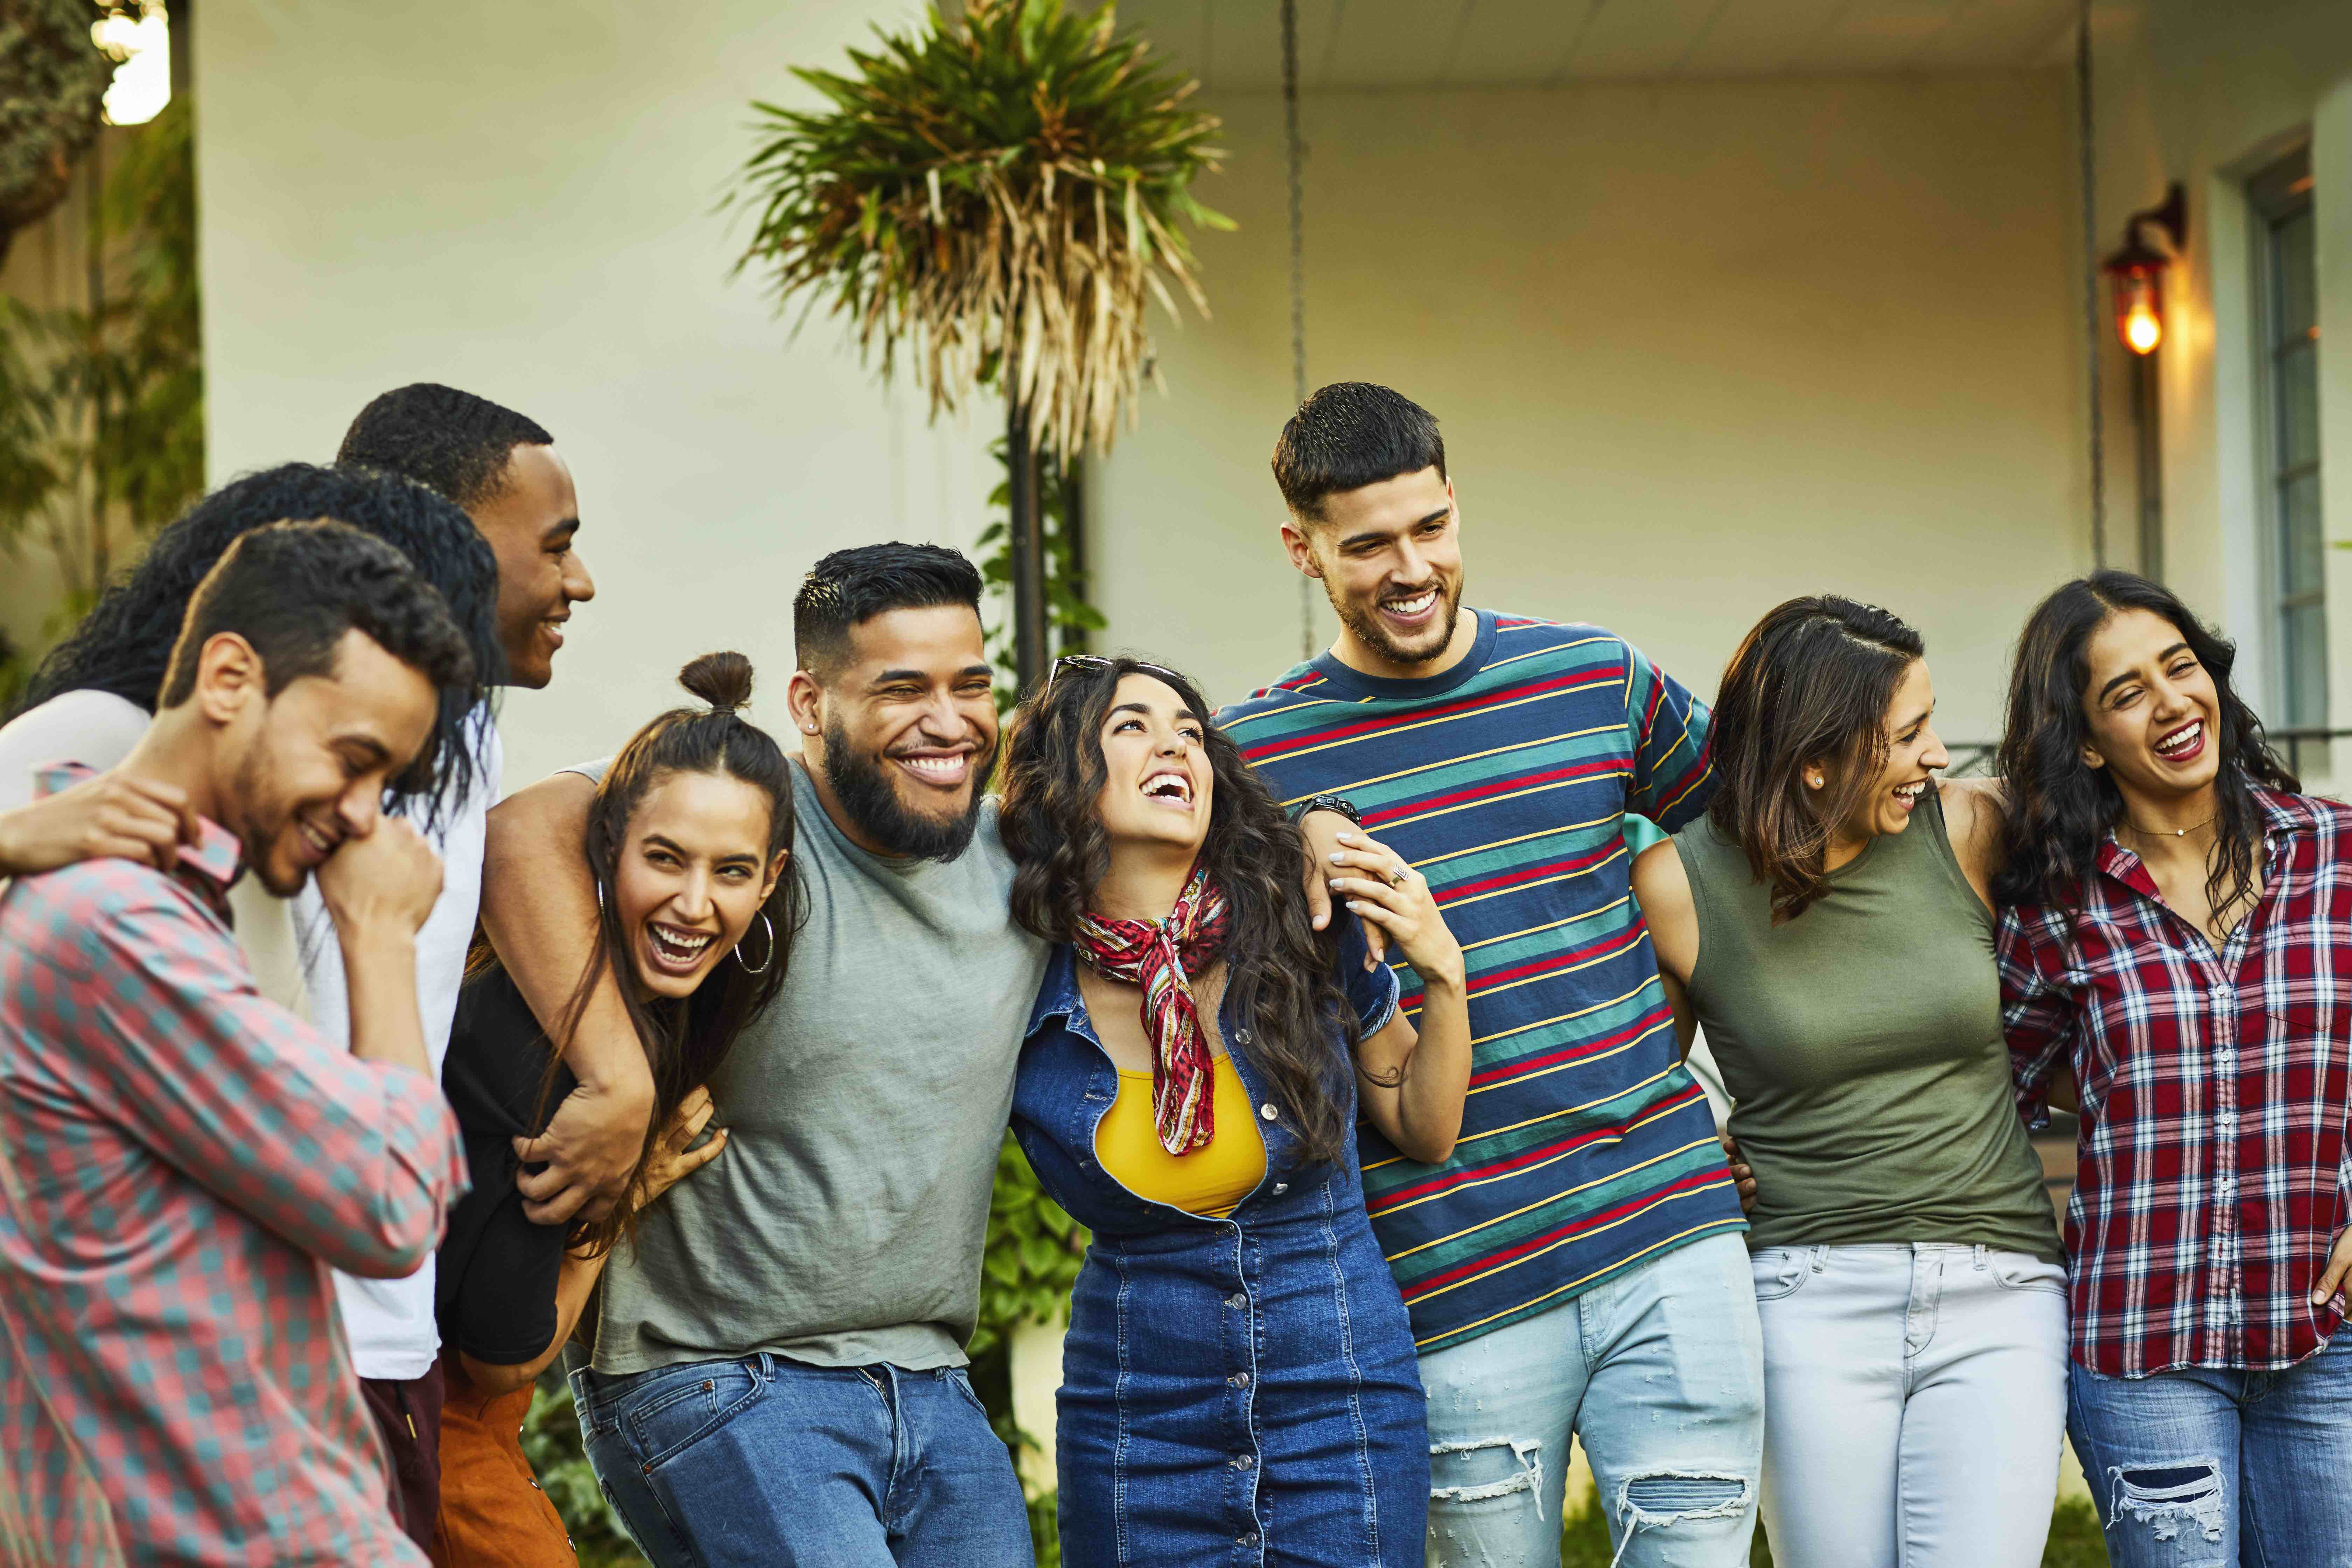 Hispanic, Latino or Latinx: This Poll Looks at How Our Community Prefers to Identify